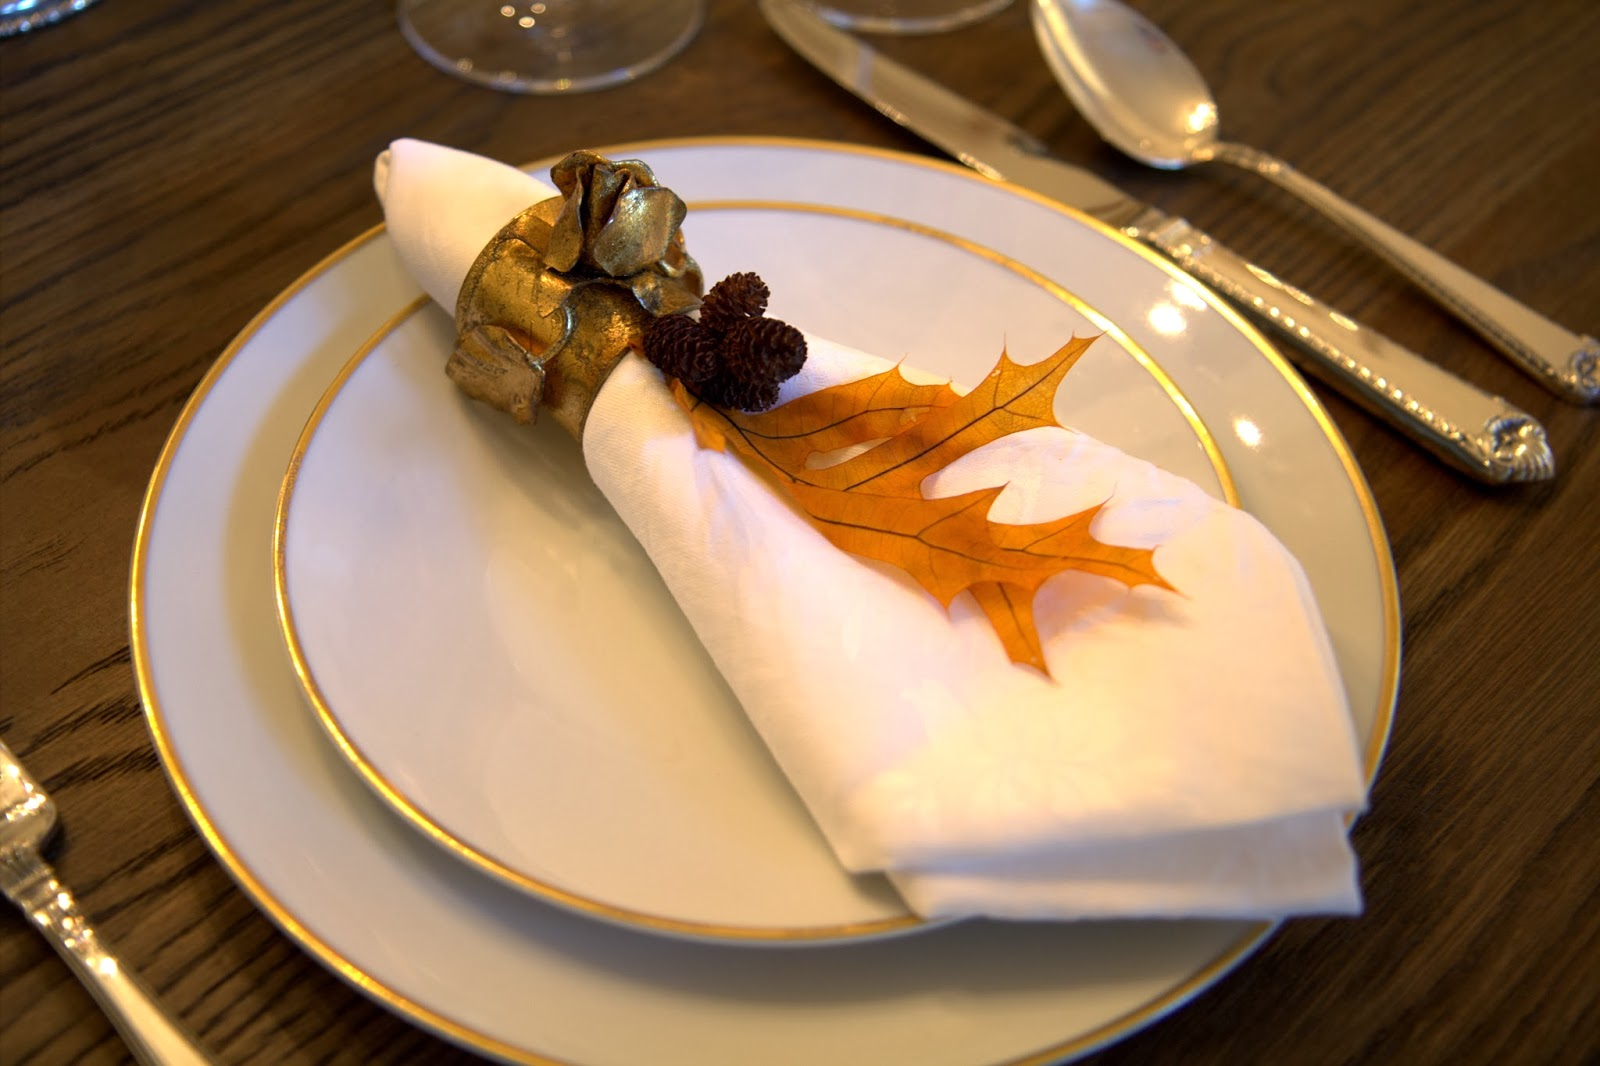 Fall Place Setting and Napkin with Leaf